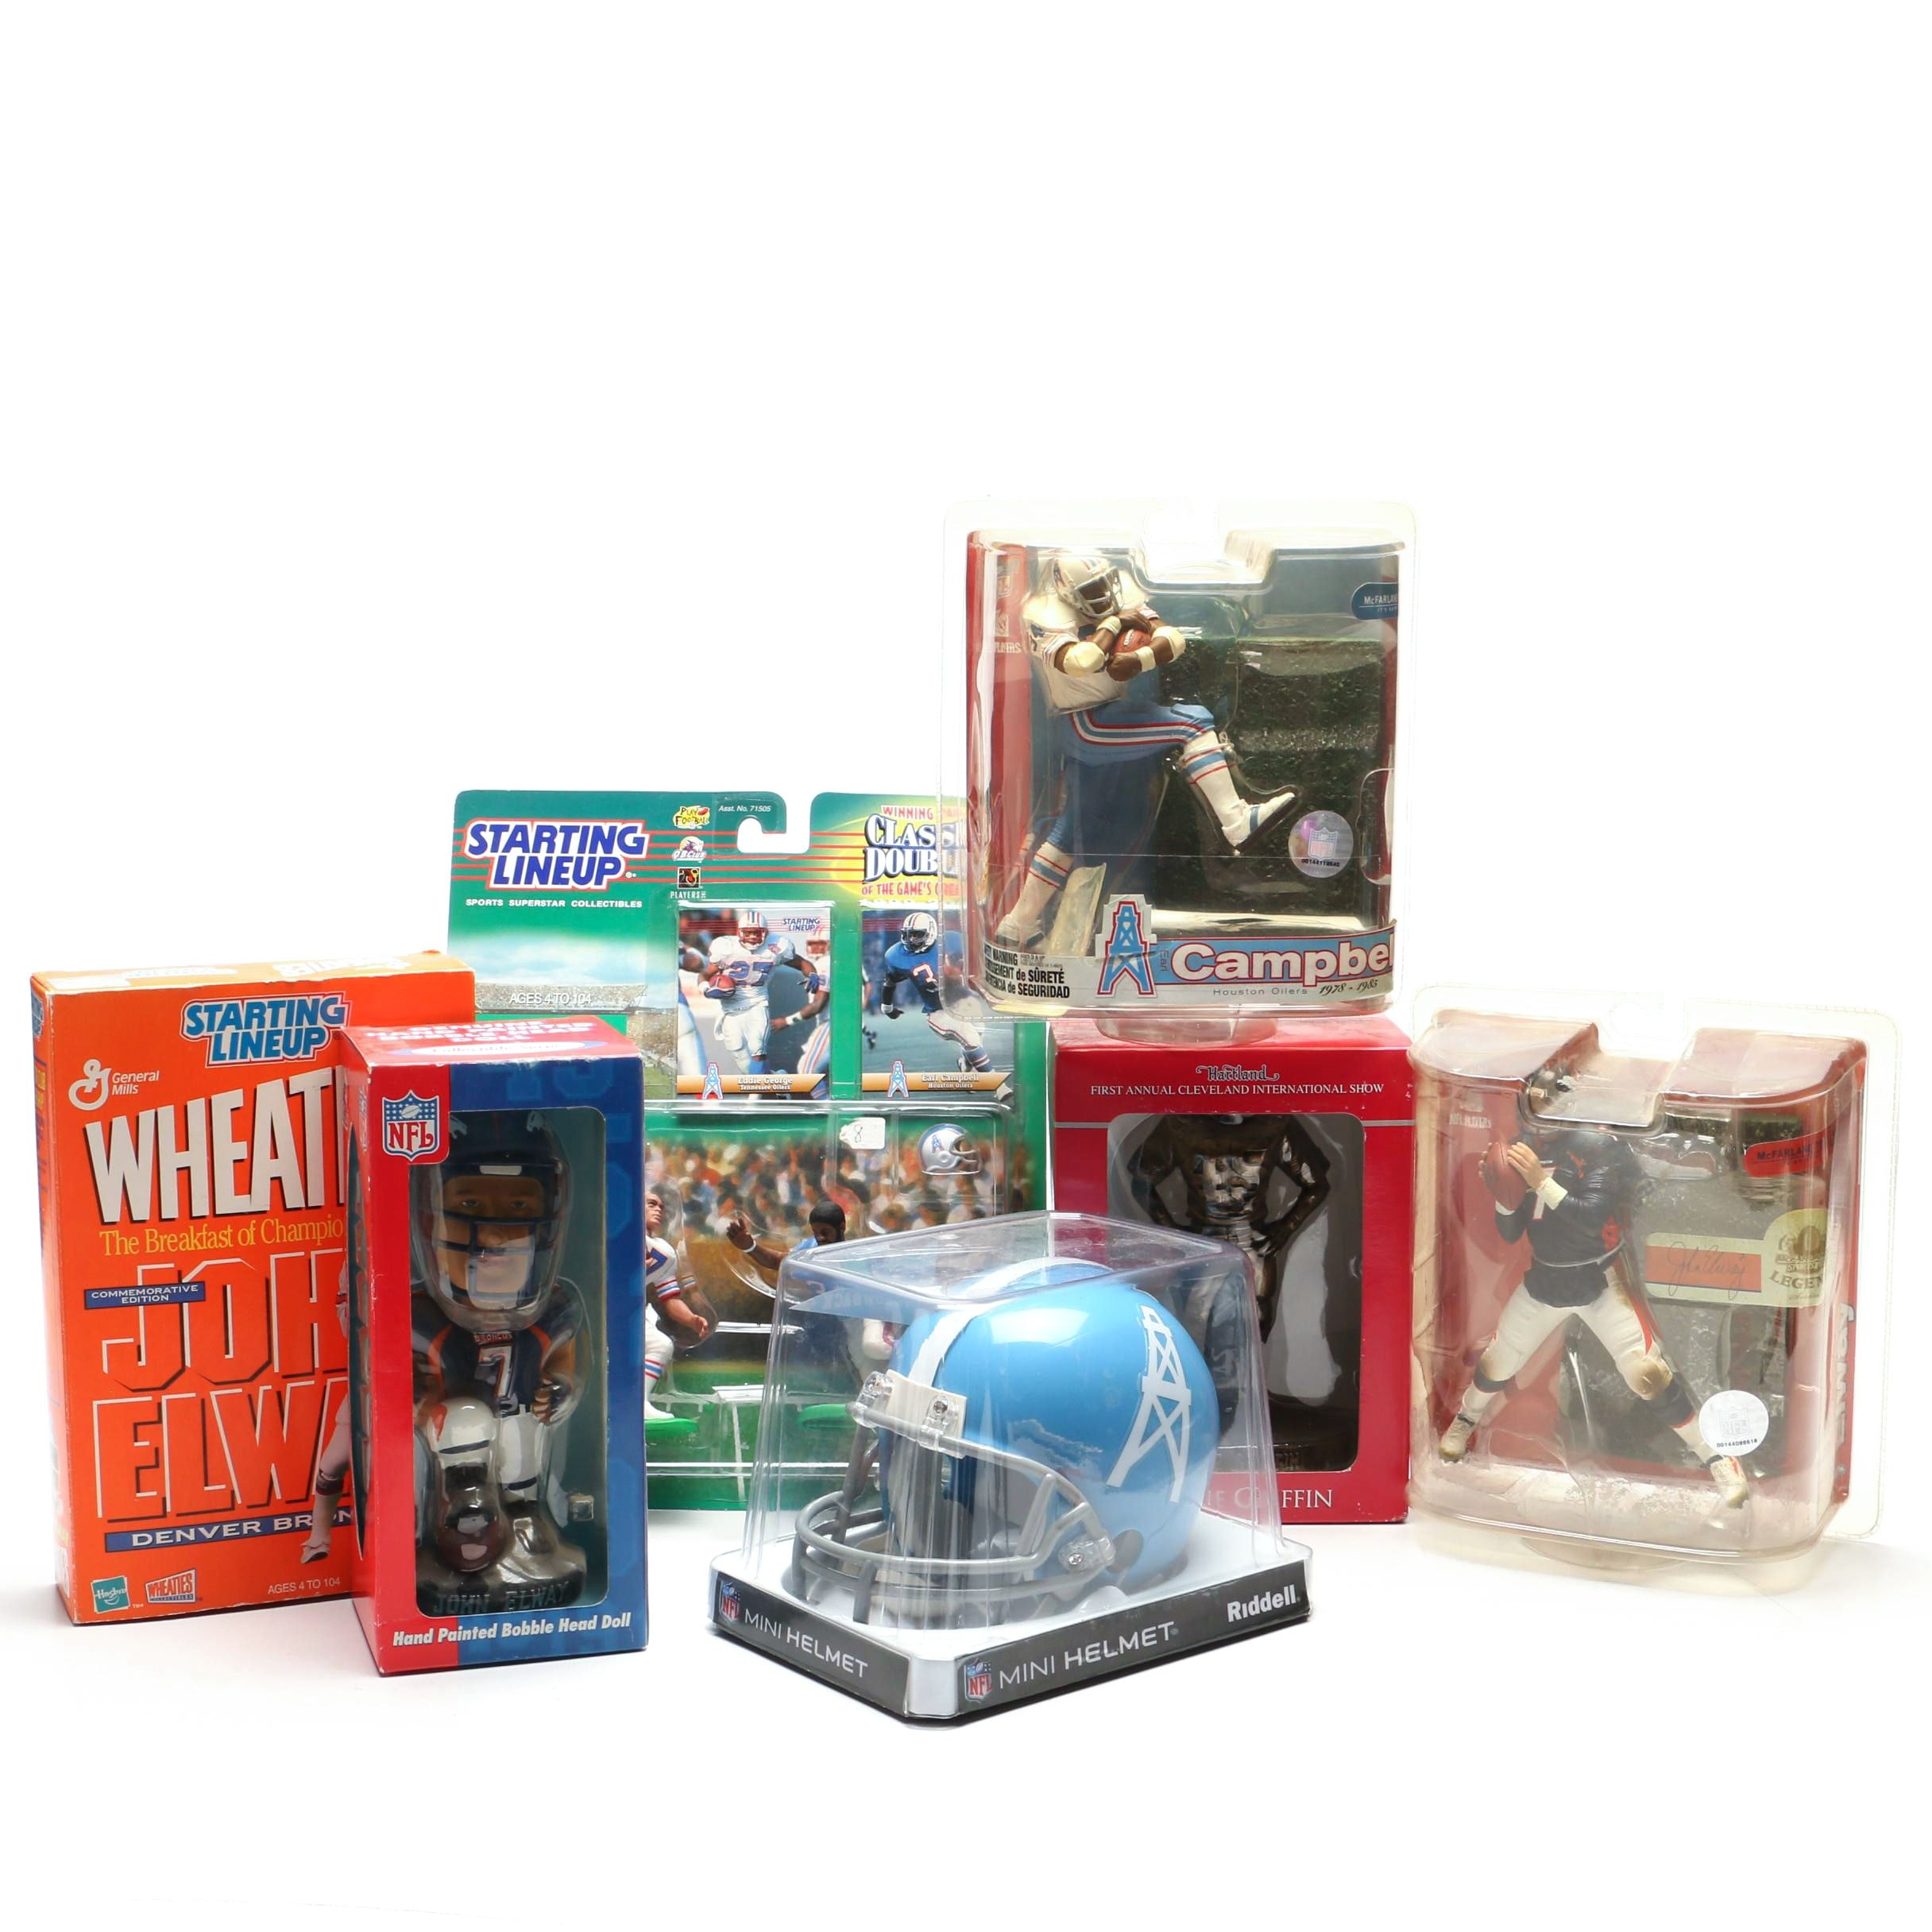 John Elway, Earl Campbell, Archie Griffin Football Figures and More